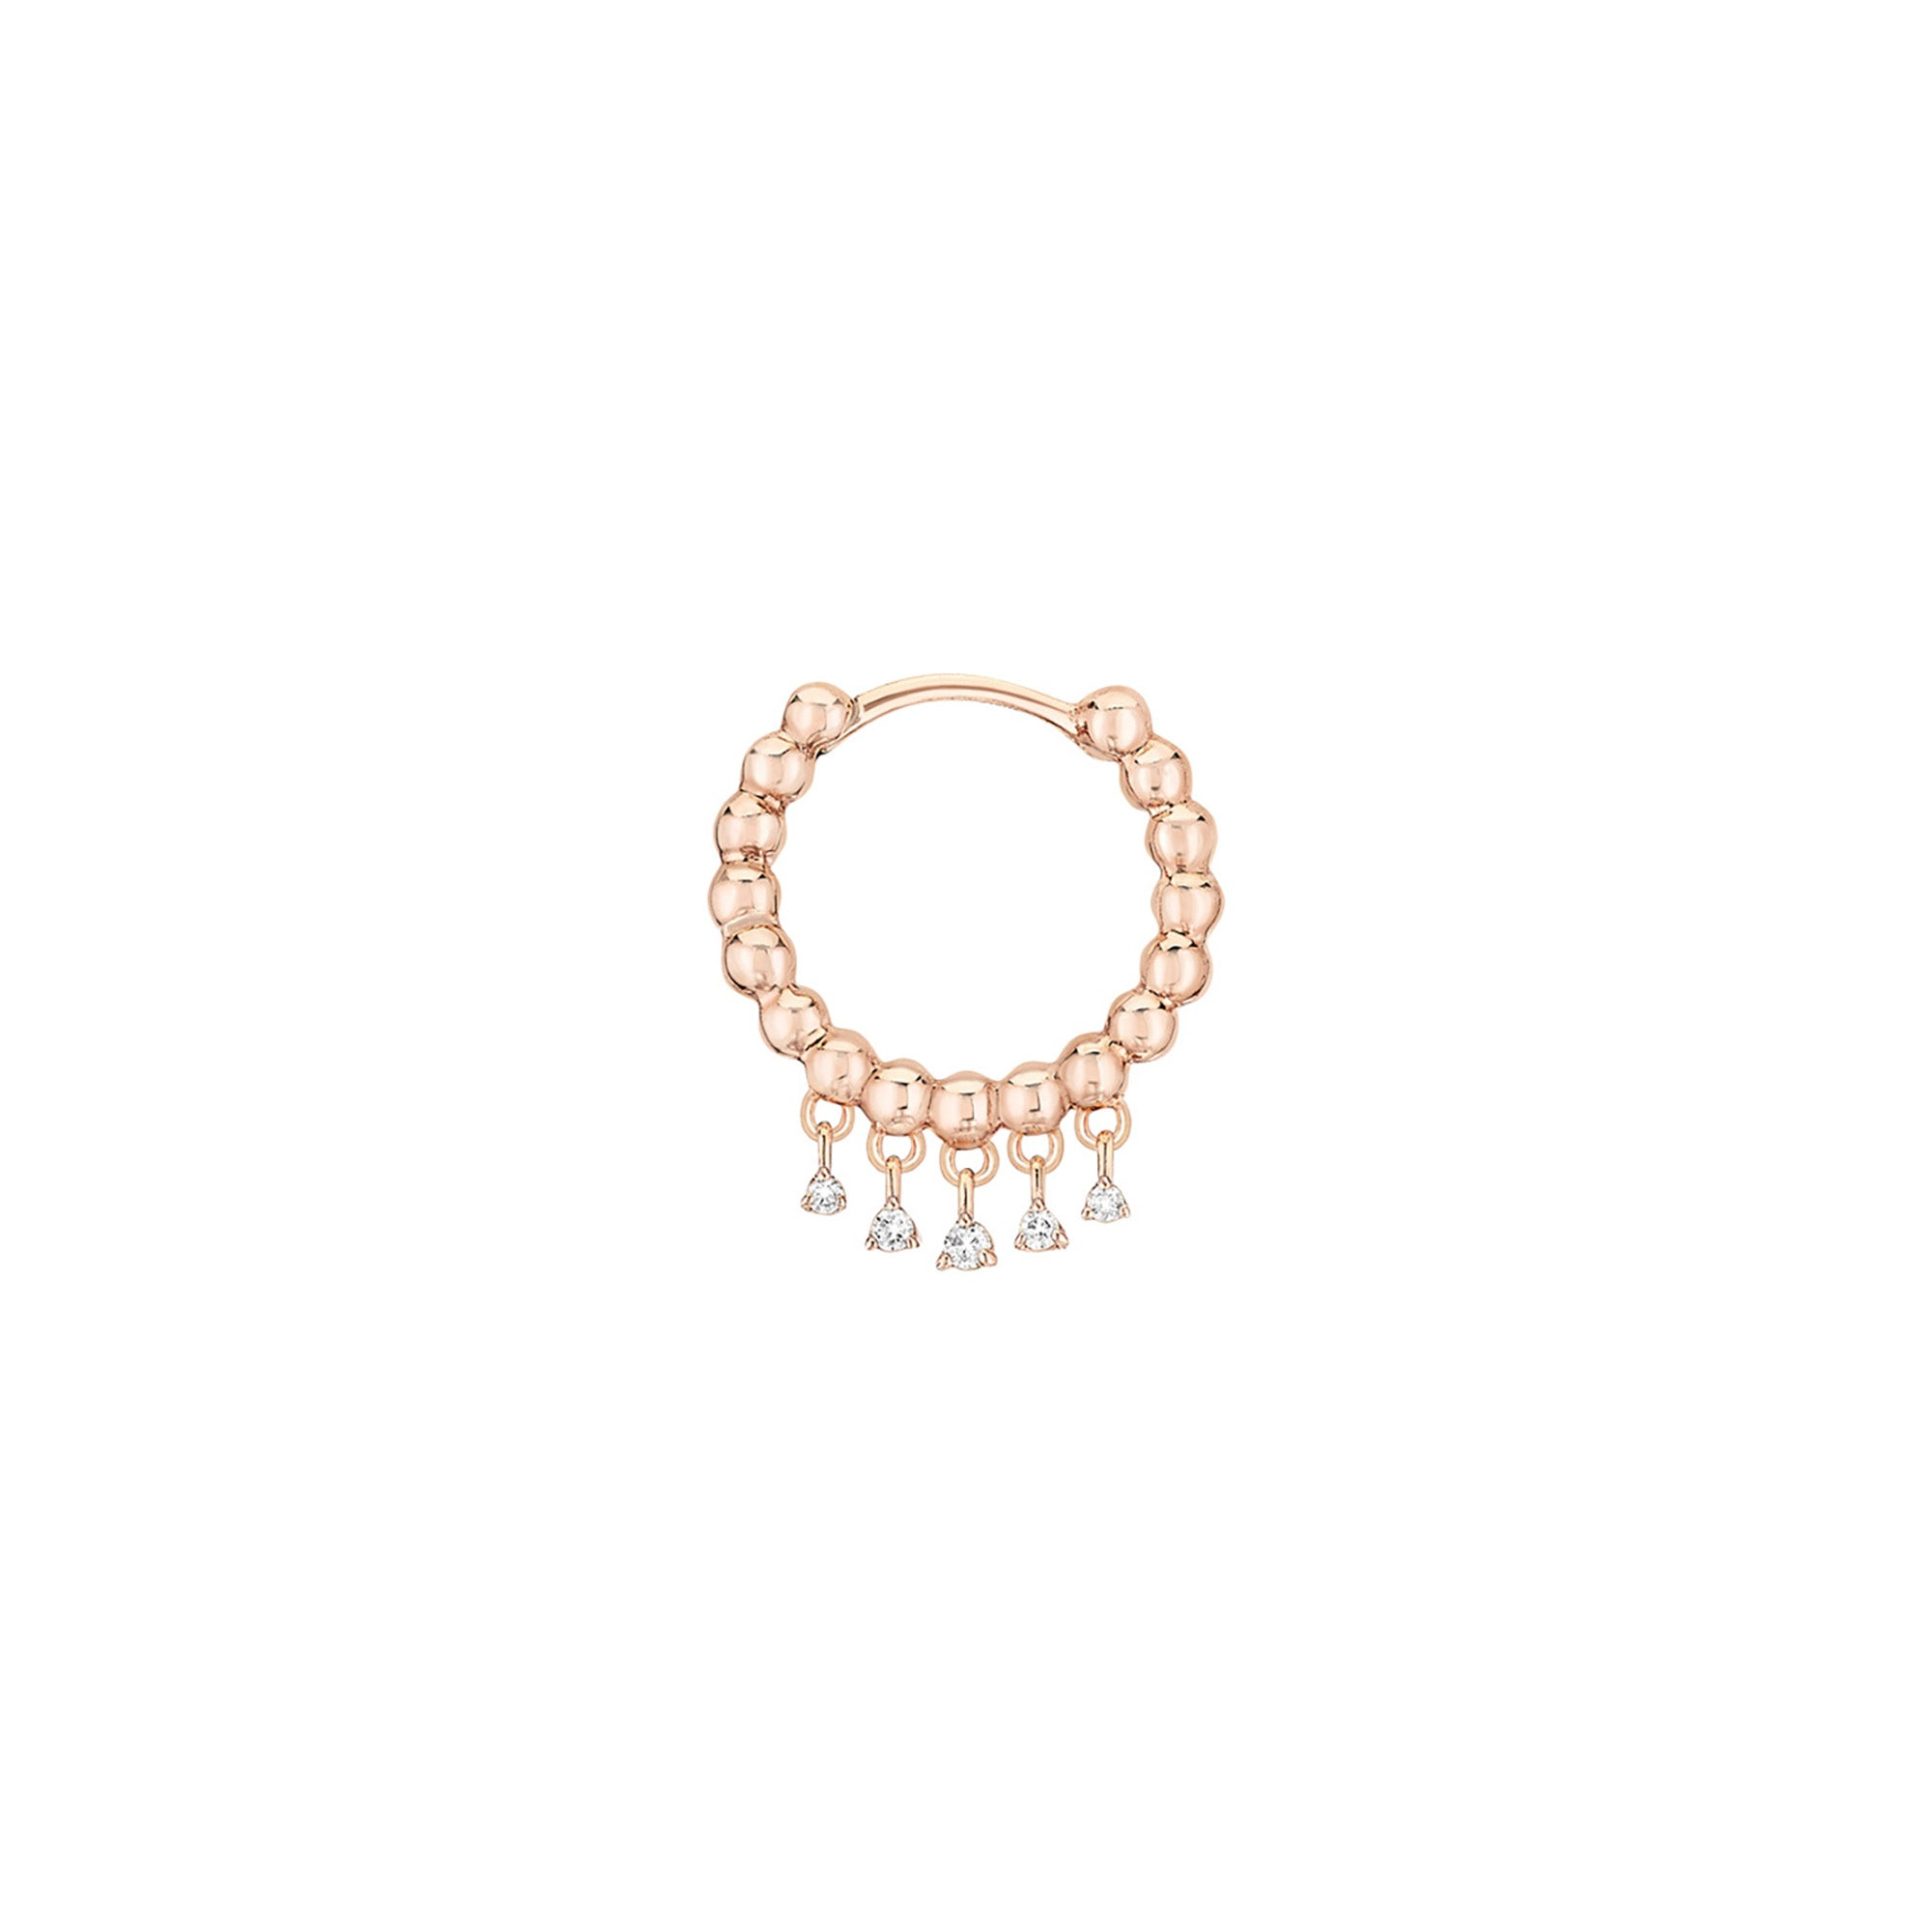 Stone Paris Talitha Tiny Hoop - Rose Gold - Earrings - Broken English Jewelry